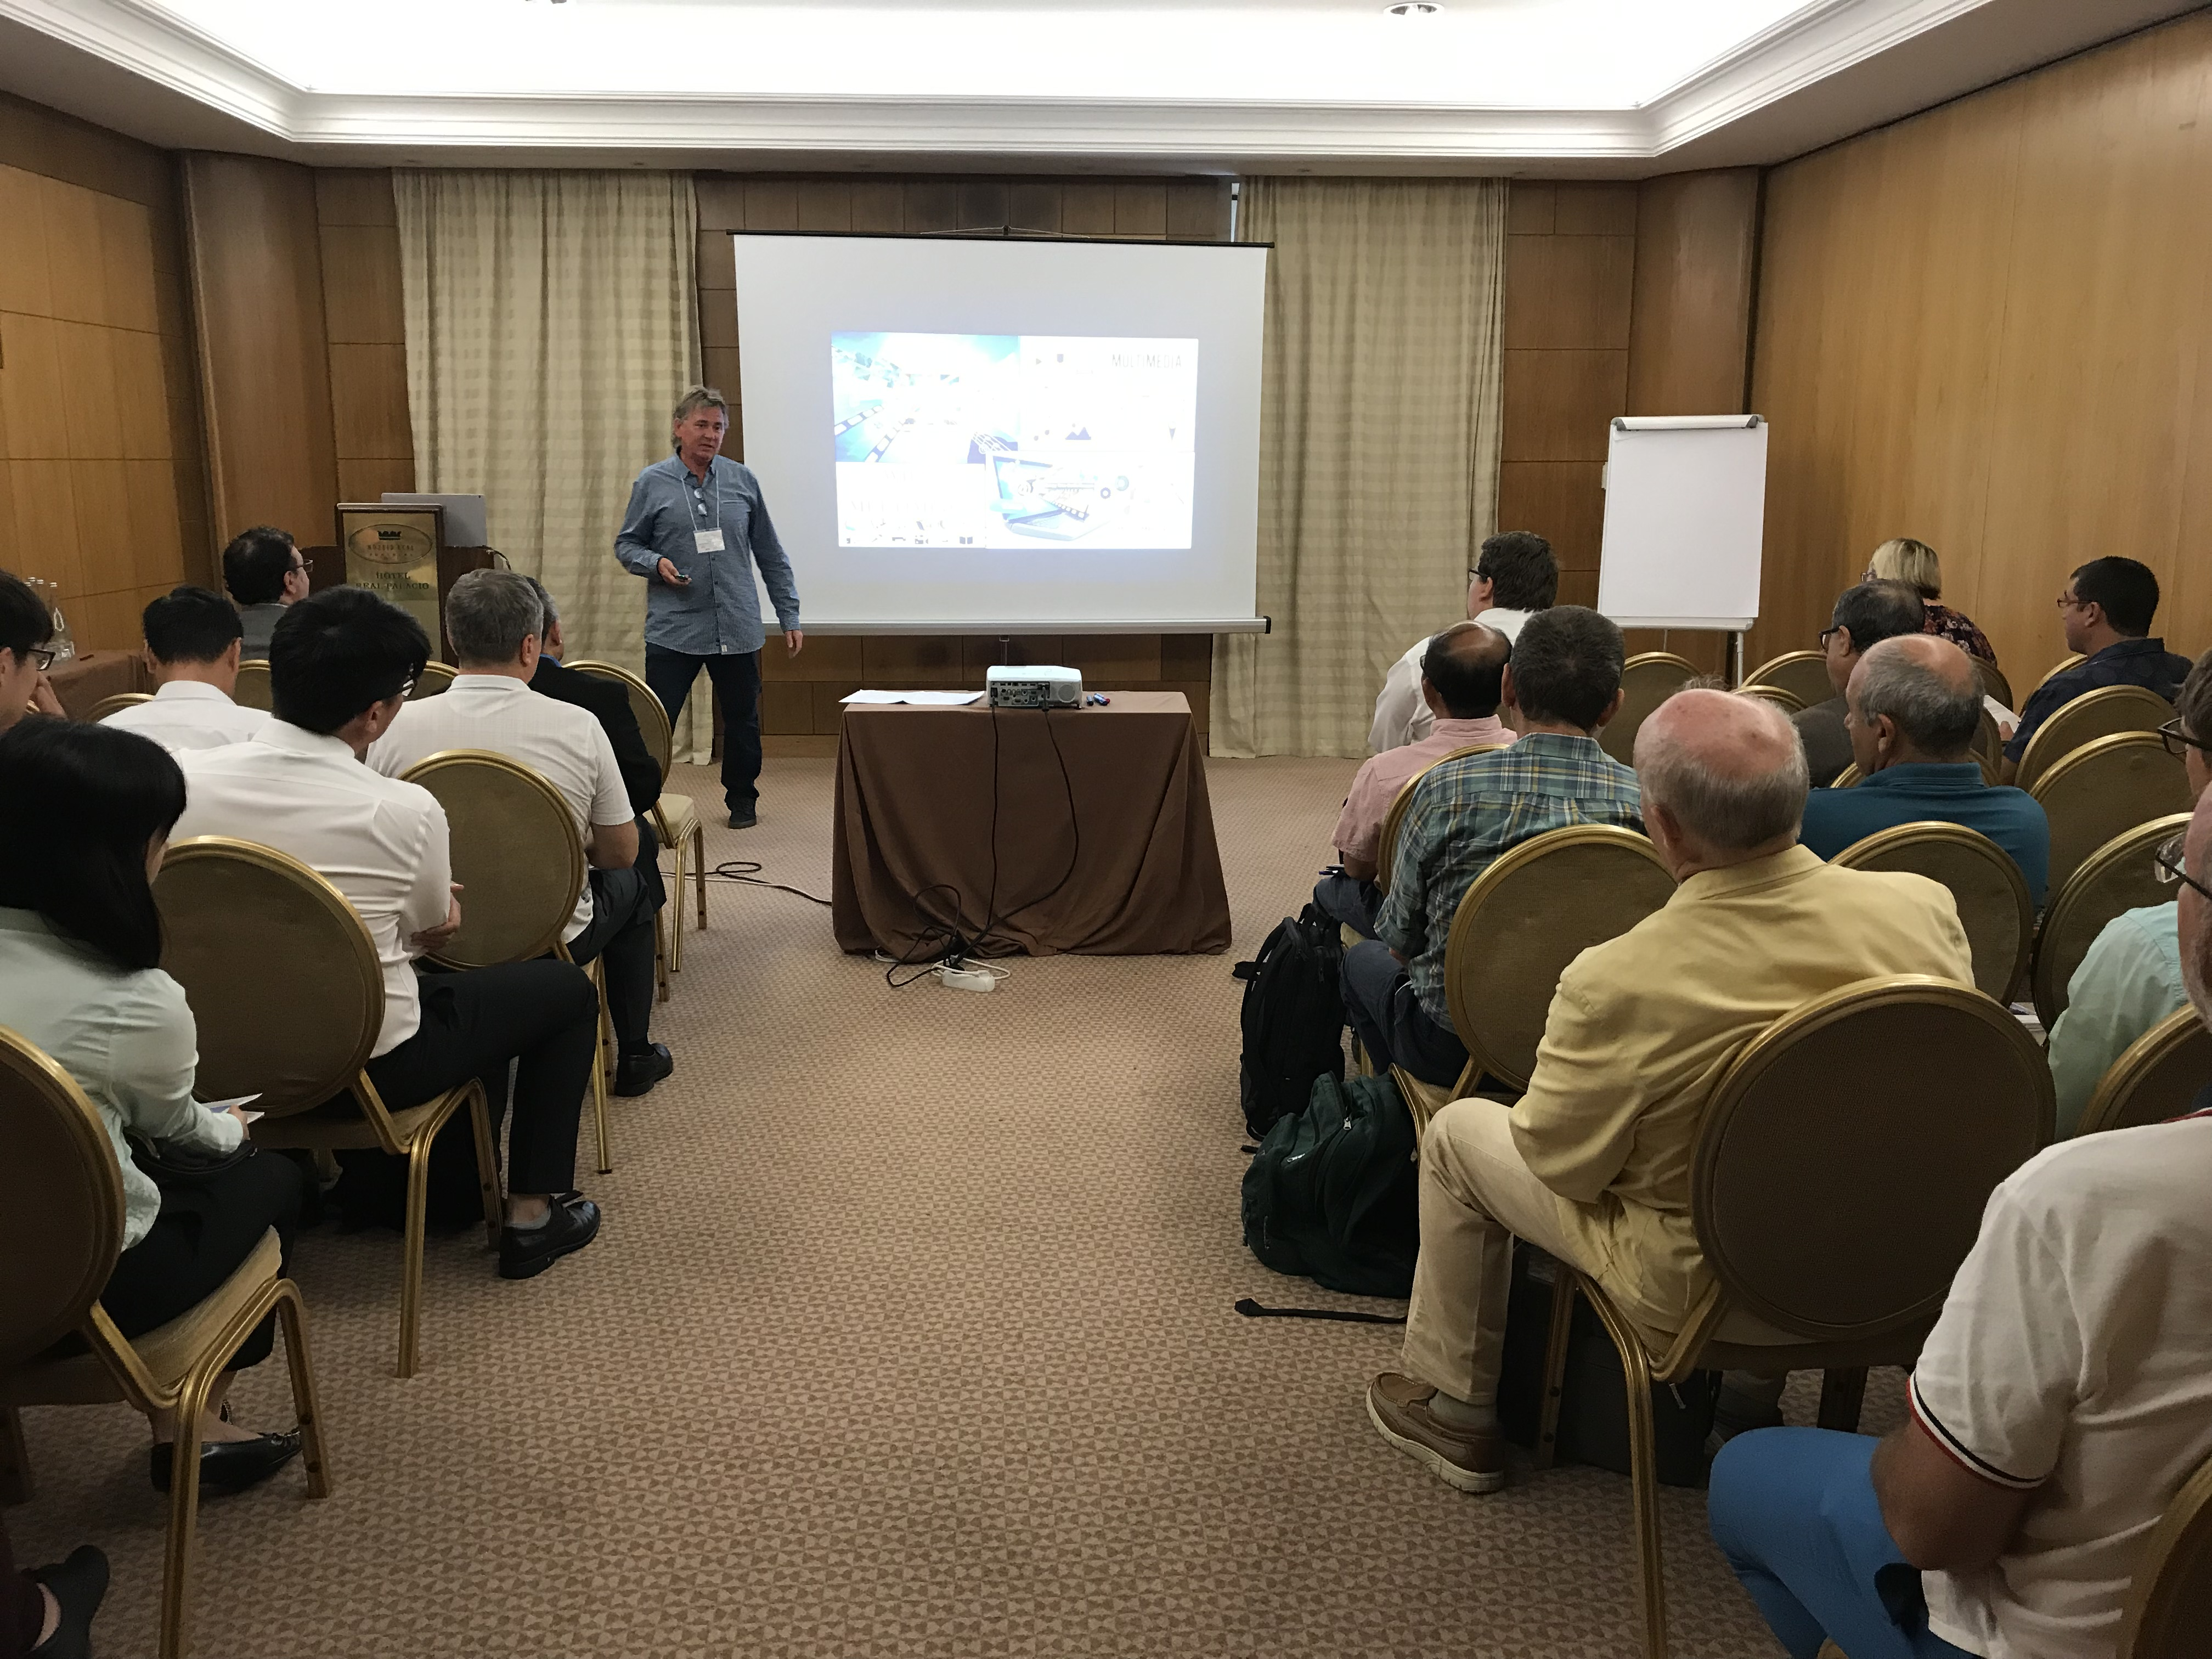 5th World Congress on Mechanical, Chemical, and Material Engineering (MCM'19) - August 21 - 23, 2019 | Lisbon, Portugal- Event Photos